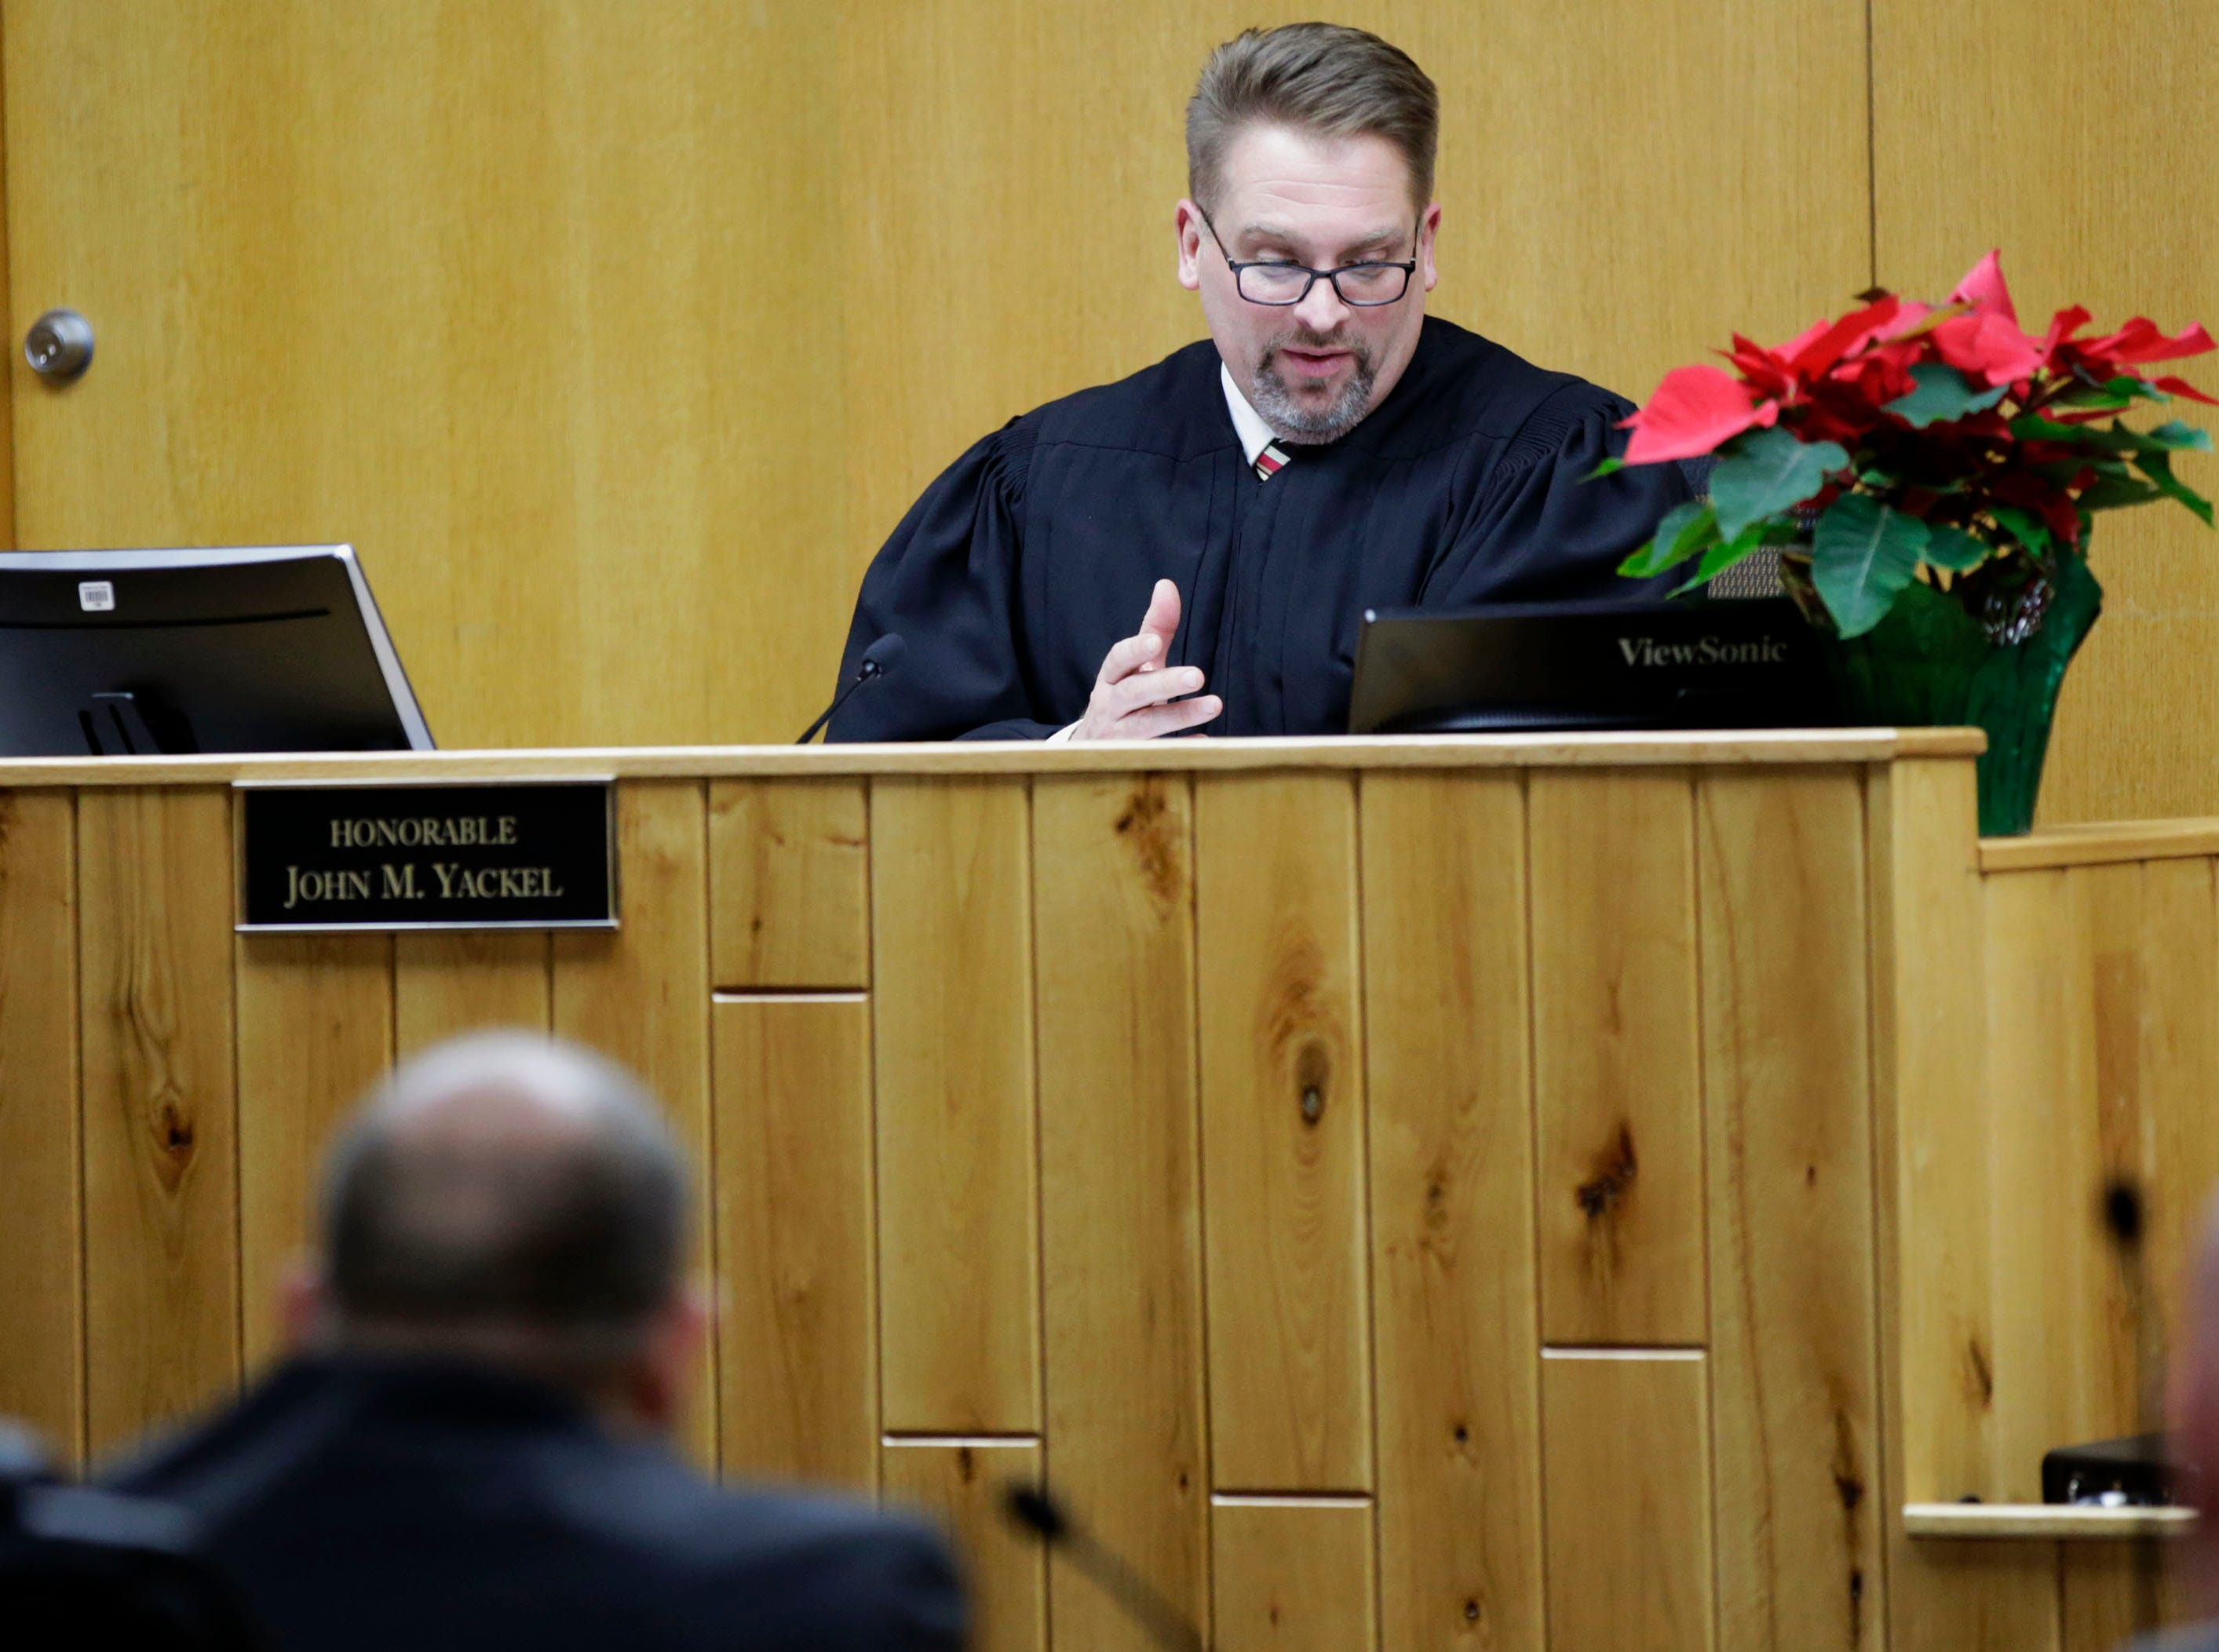 Sawyer County Circuit Court Judge John Yackel addresses the court during a preliminary hearing in the case of former Catholic priest Thomas Ericksen on Wednesday, December 12, 2018, at the Sawyer County courthouse in Hayward, Wis.Tork Mason/USA Today NETWORK-Wisconsin